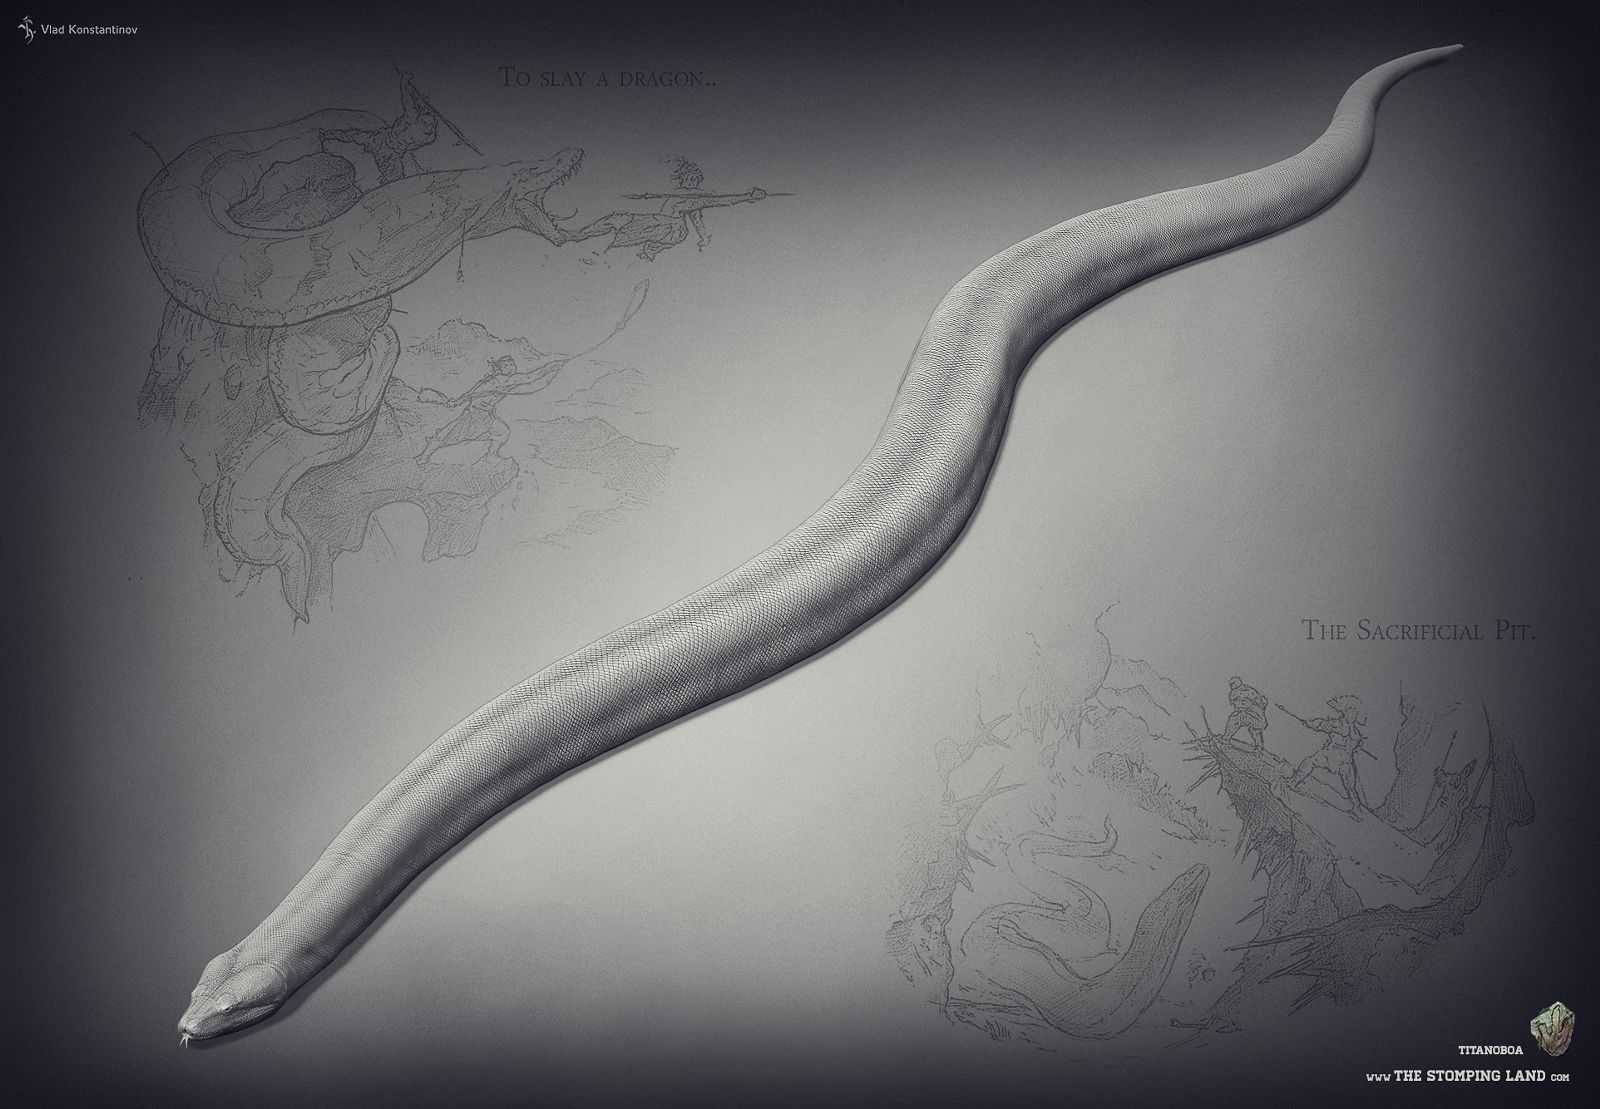 The titanoboa in the isle will be like for tribals if you